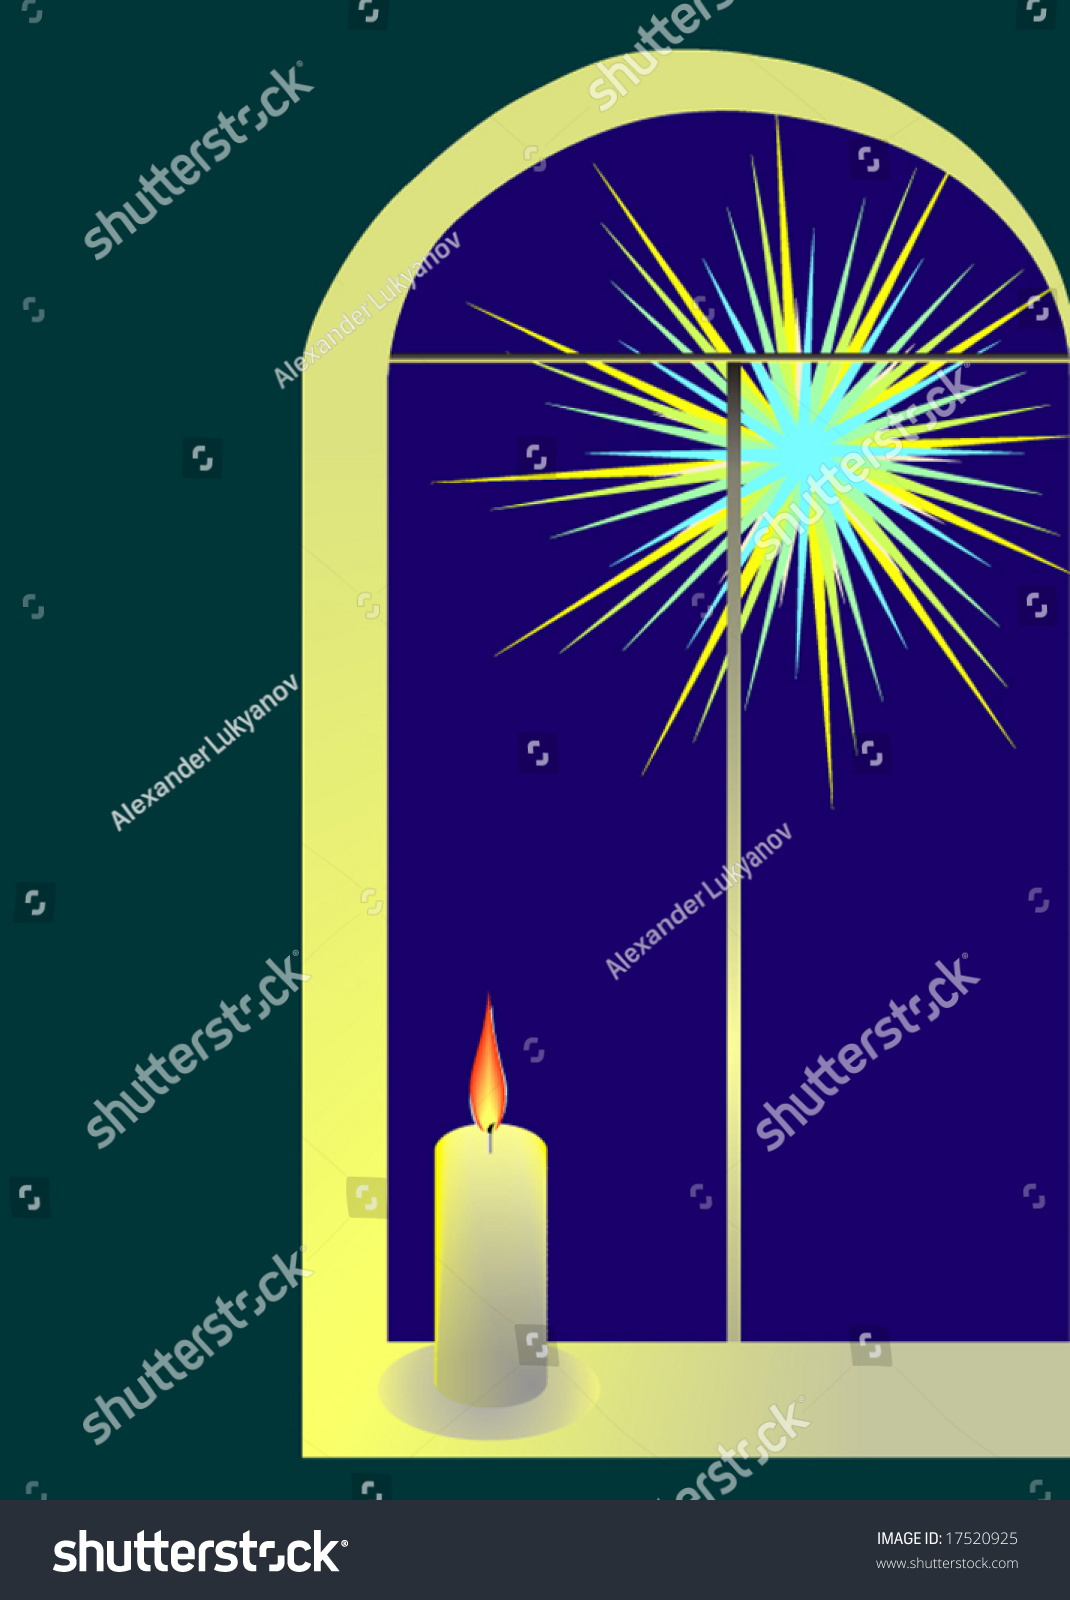 Illustration Candle On The Window With A Bright Evening